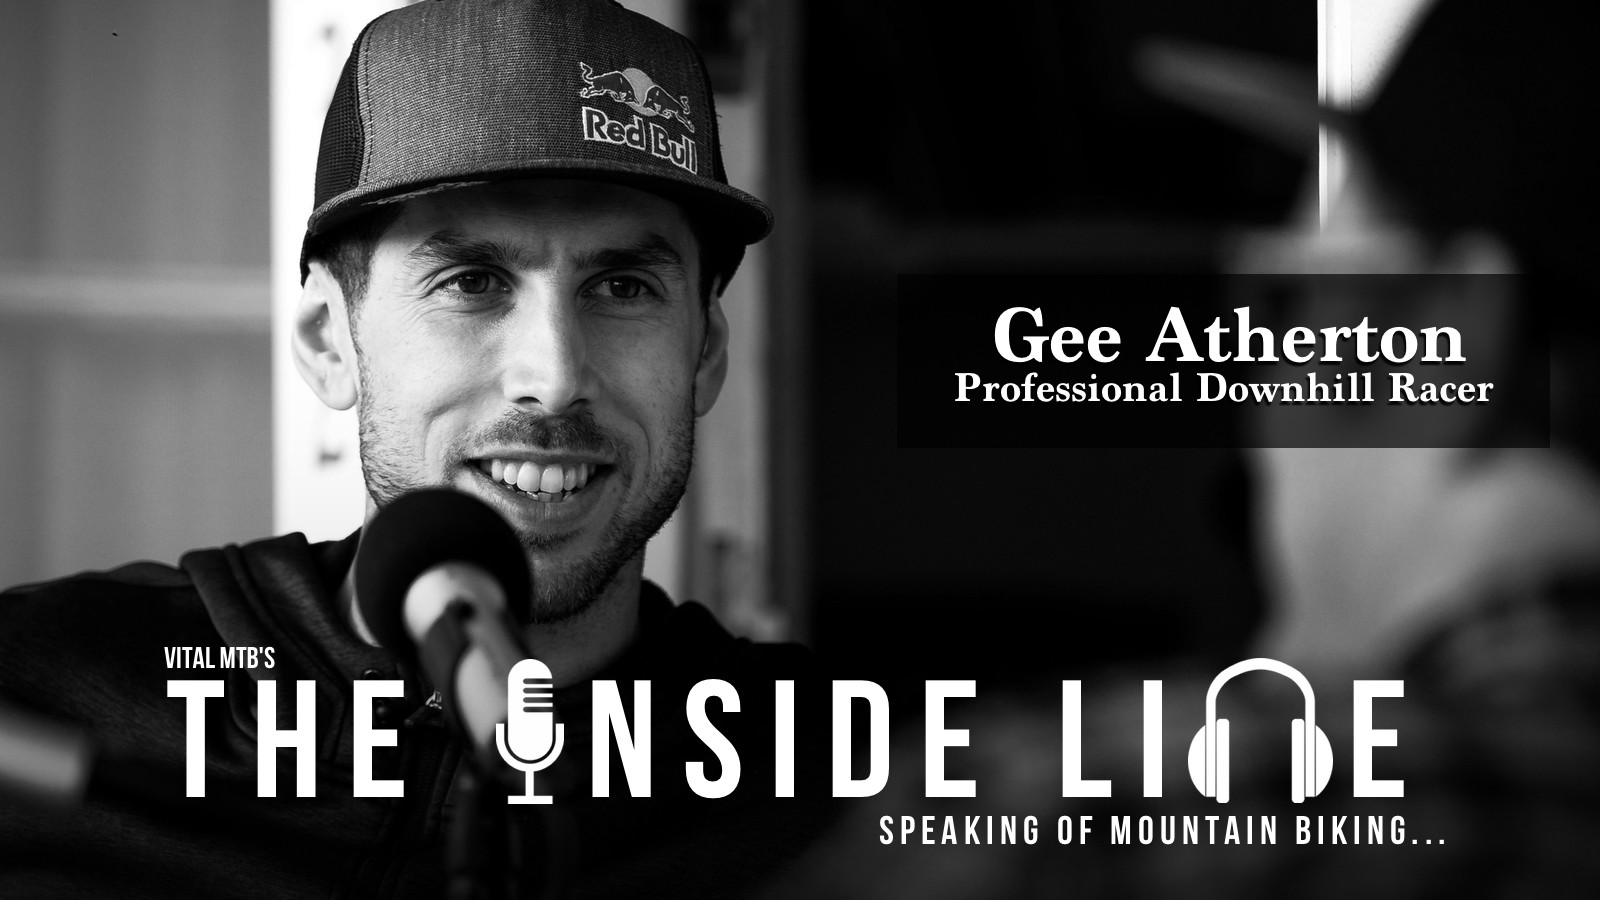 The Inside Line Podcast - Gee Atherton, Professional Downhill Mountain Biker